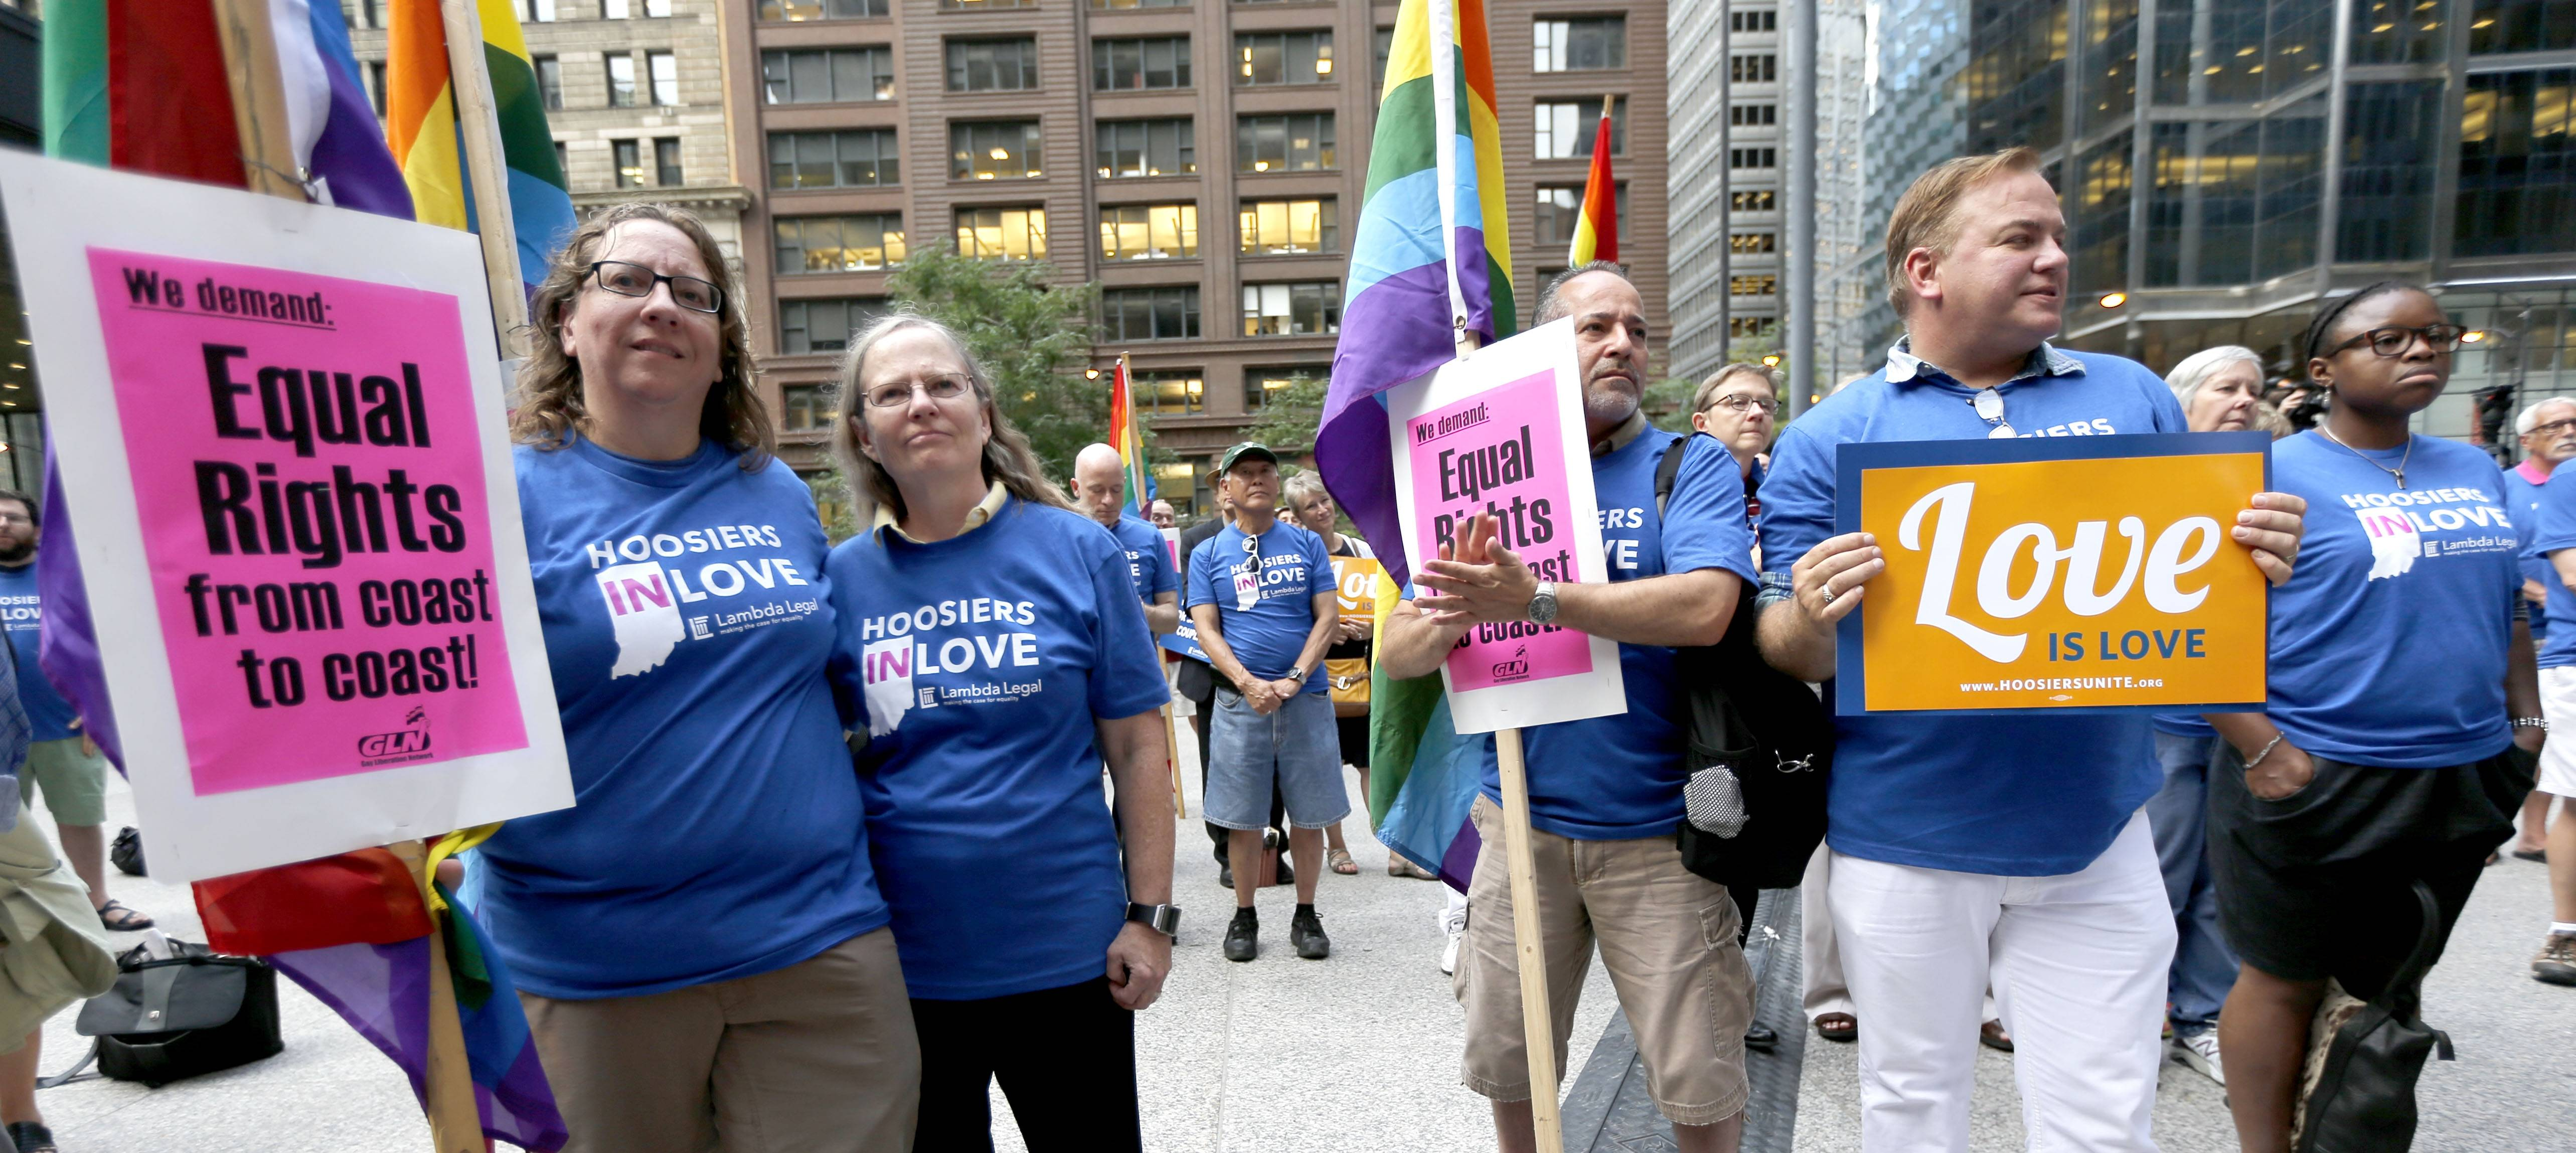 Supporters of gay marriage in Wisconsin and Indiana attend a rally at the federal plaza Monday, Aug. 25, 2014, in Chicago. The Chicago-based 7th U.S. Circuit Court of Appeals will hear arguments Tuesday on gay marriage fights from Indiana and Wisconsin, setting the stage for one ruling. Each case deals with whether statewide gay marriage bans violate the Constitution.